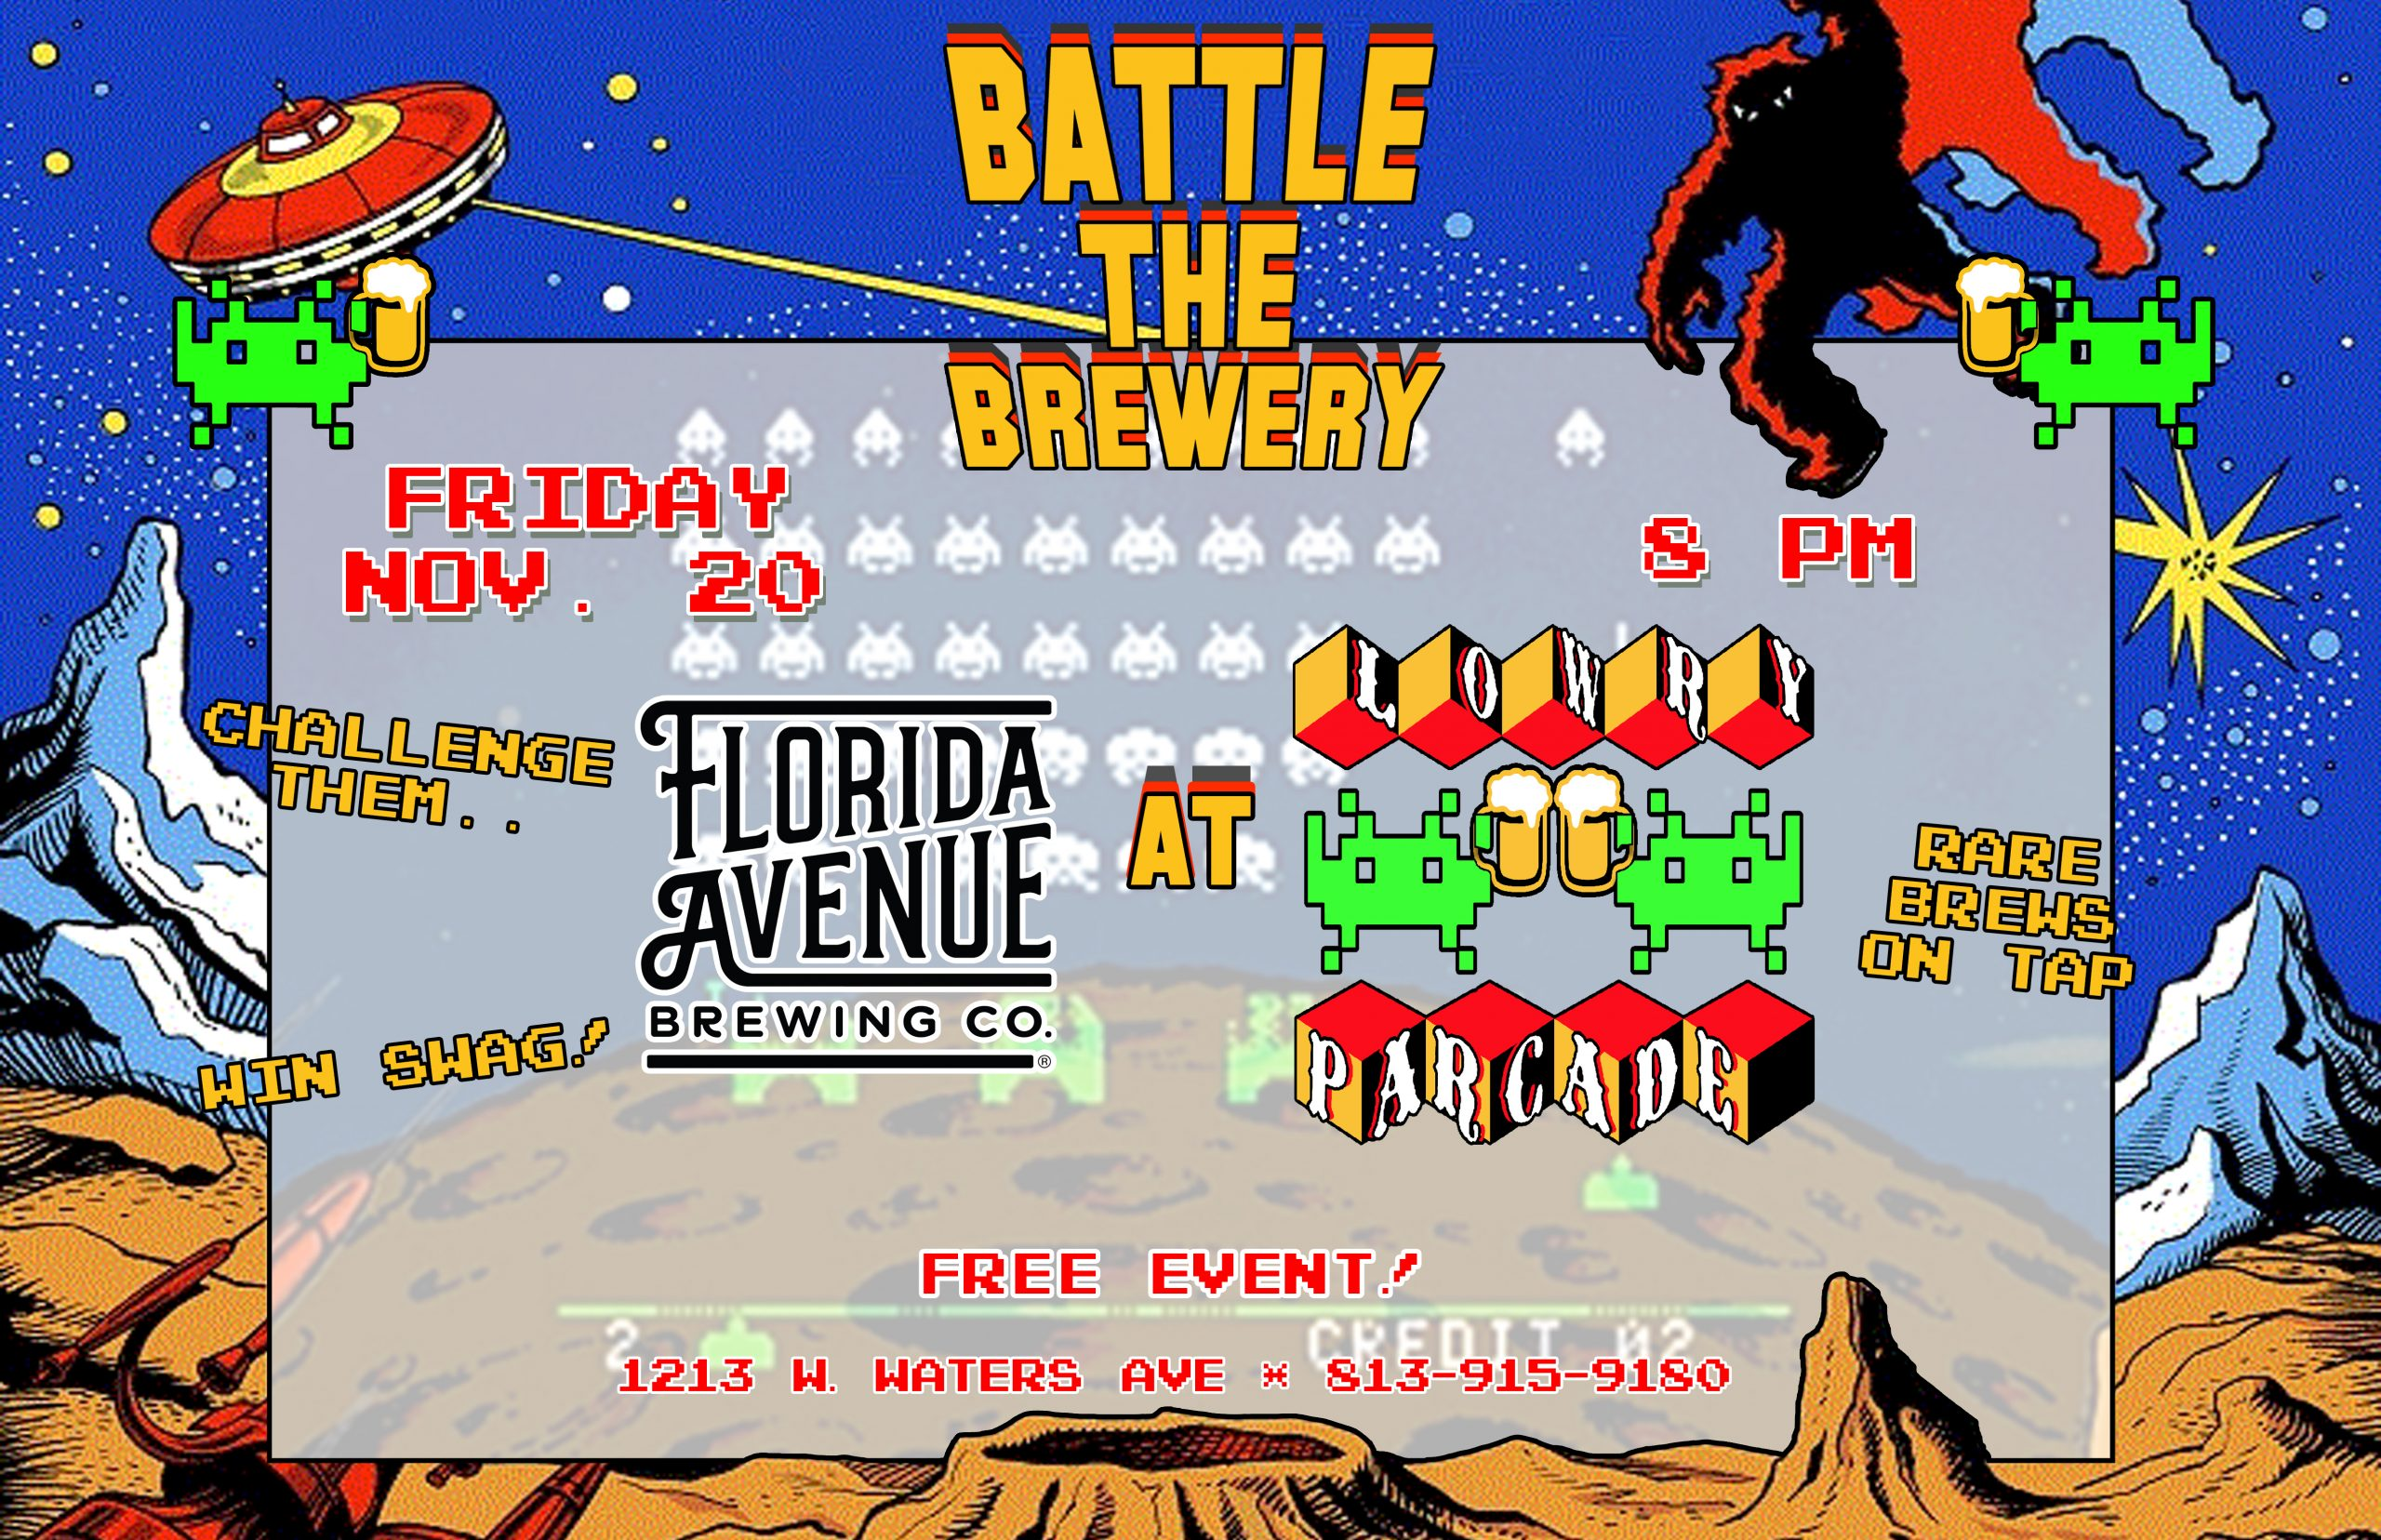 Battle The Brewery – Florida Avenue Brewing Co. – Friday, 11/20/20 – 8 PM